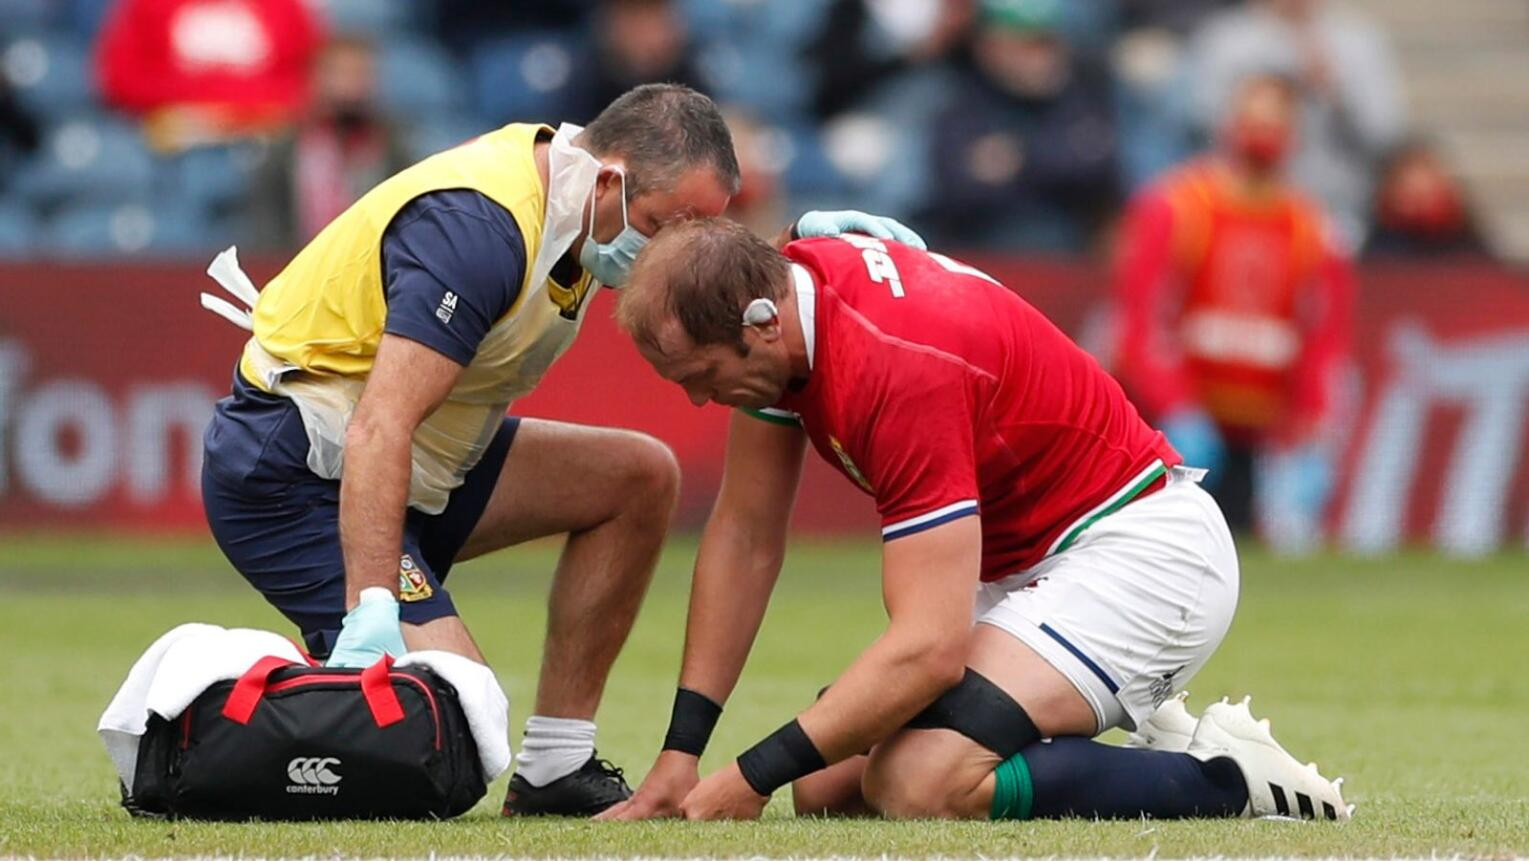 British and Irish Lions' captain Alun Wyn Jones receives medical attention after sustaining a shoulder injuryduring their game against Japan at  Murrayfield in Edinburgh on Saturday